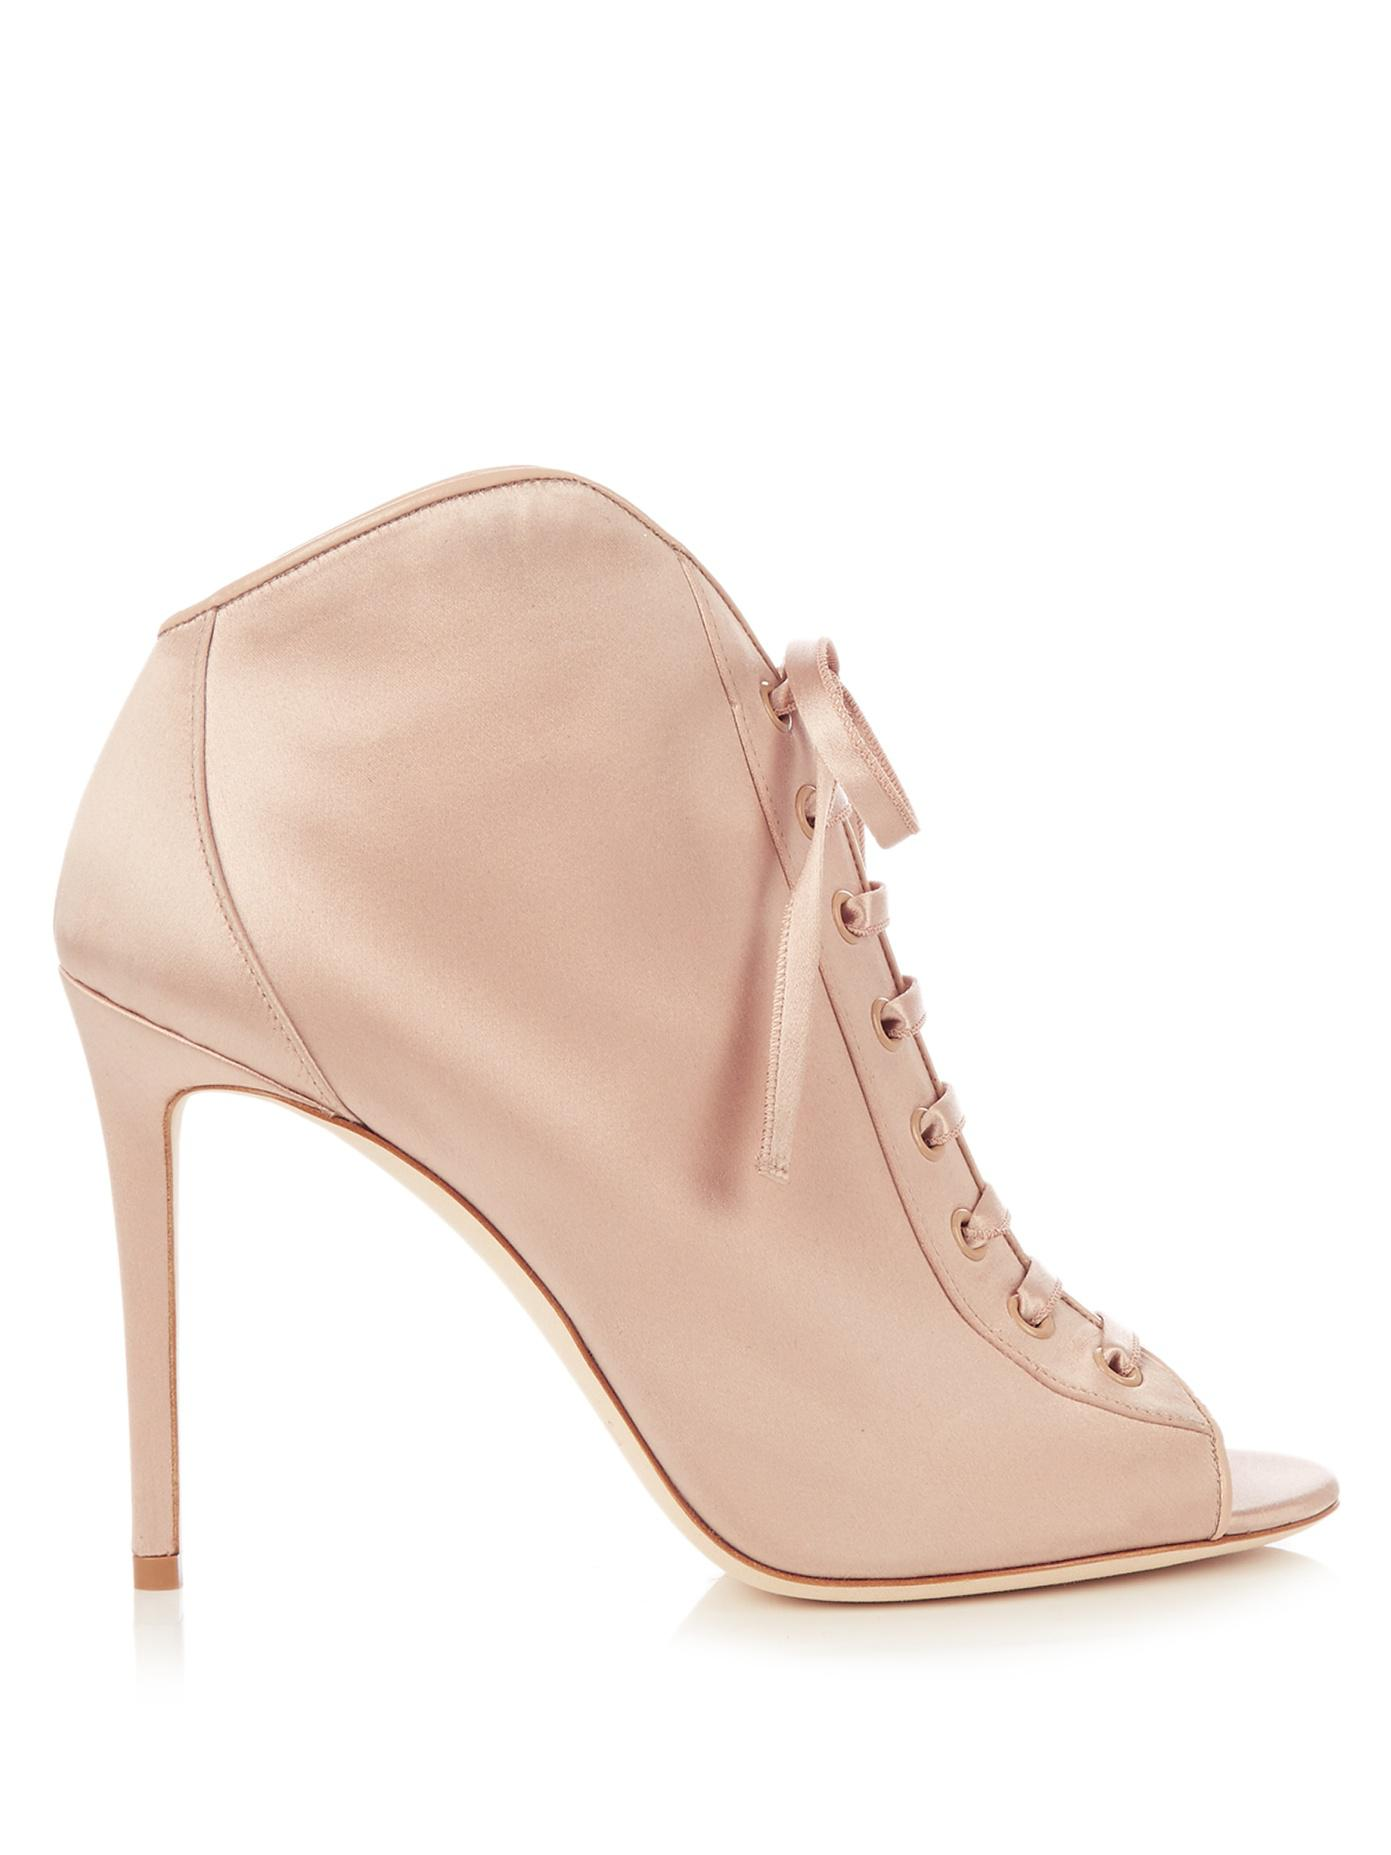 049e8af184d71 Jimmy Choo Freya 100mm Open-toe Satin Ankle Boots in Pink - Lyst